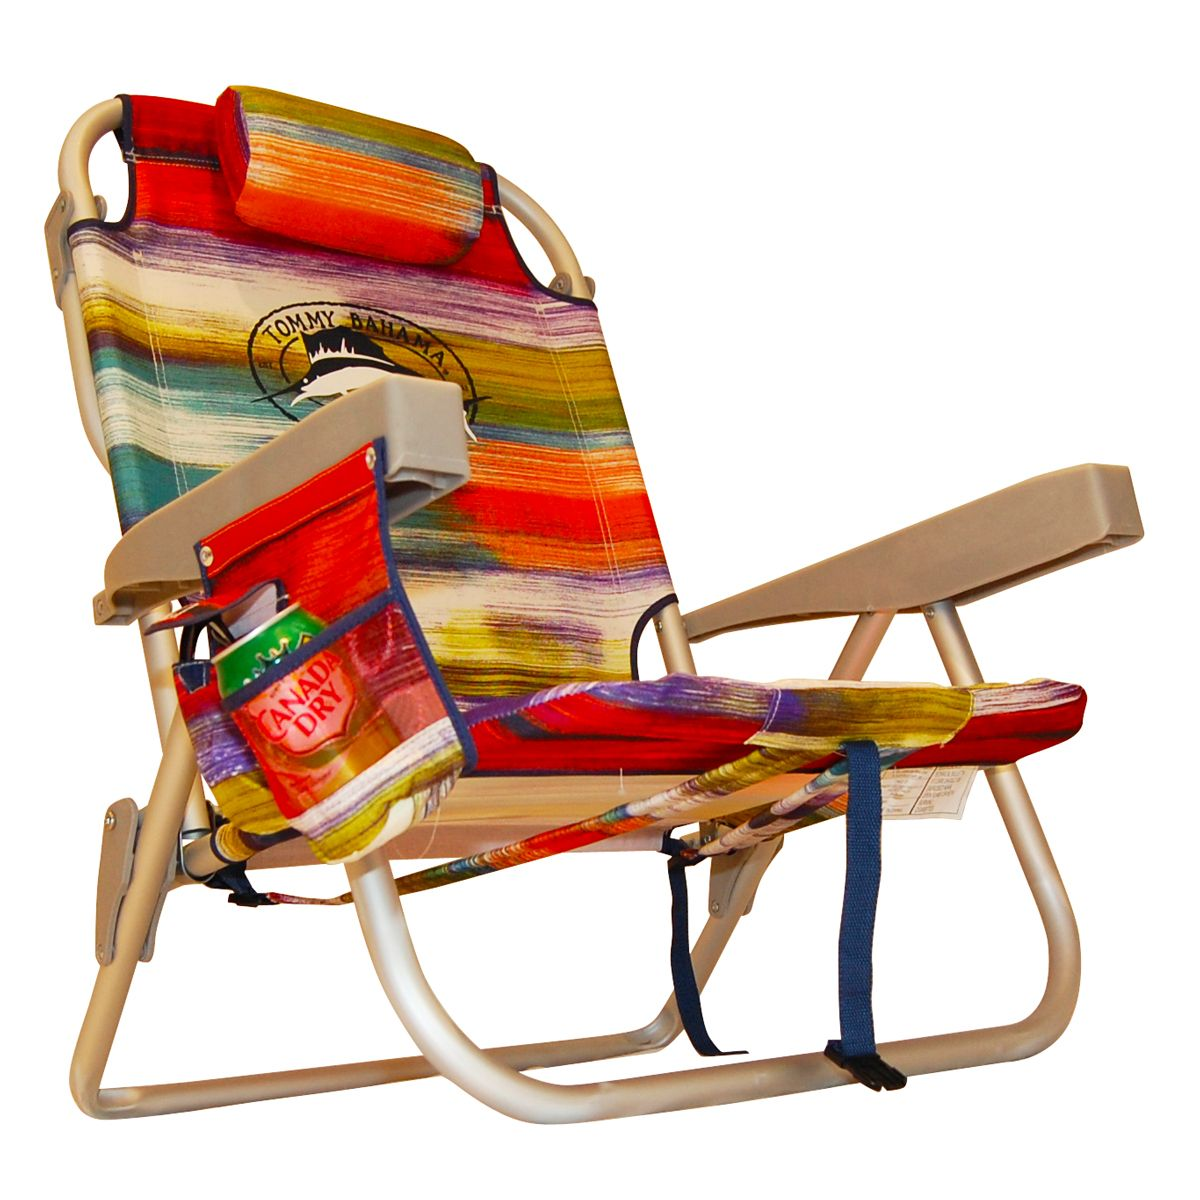 Tommy Bahama Backpack Cooler Beach Chair Dreamy Stripe Backpack